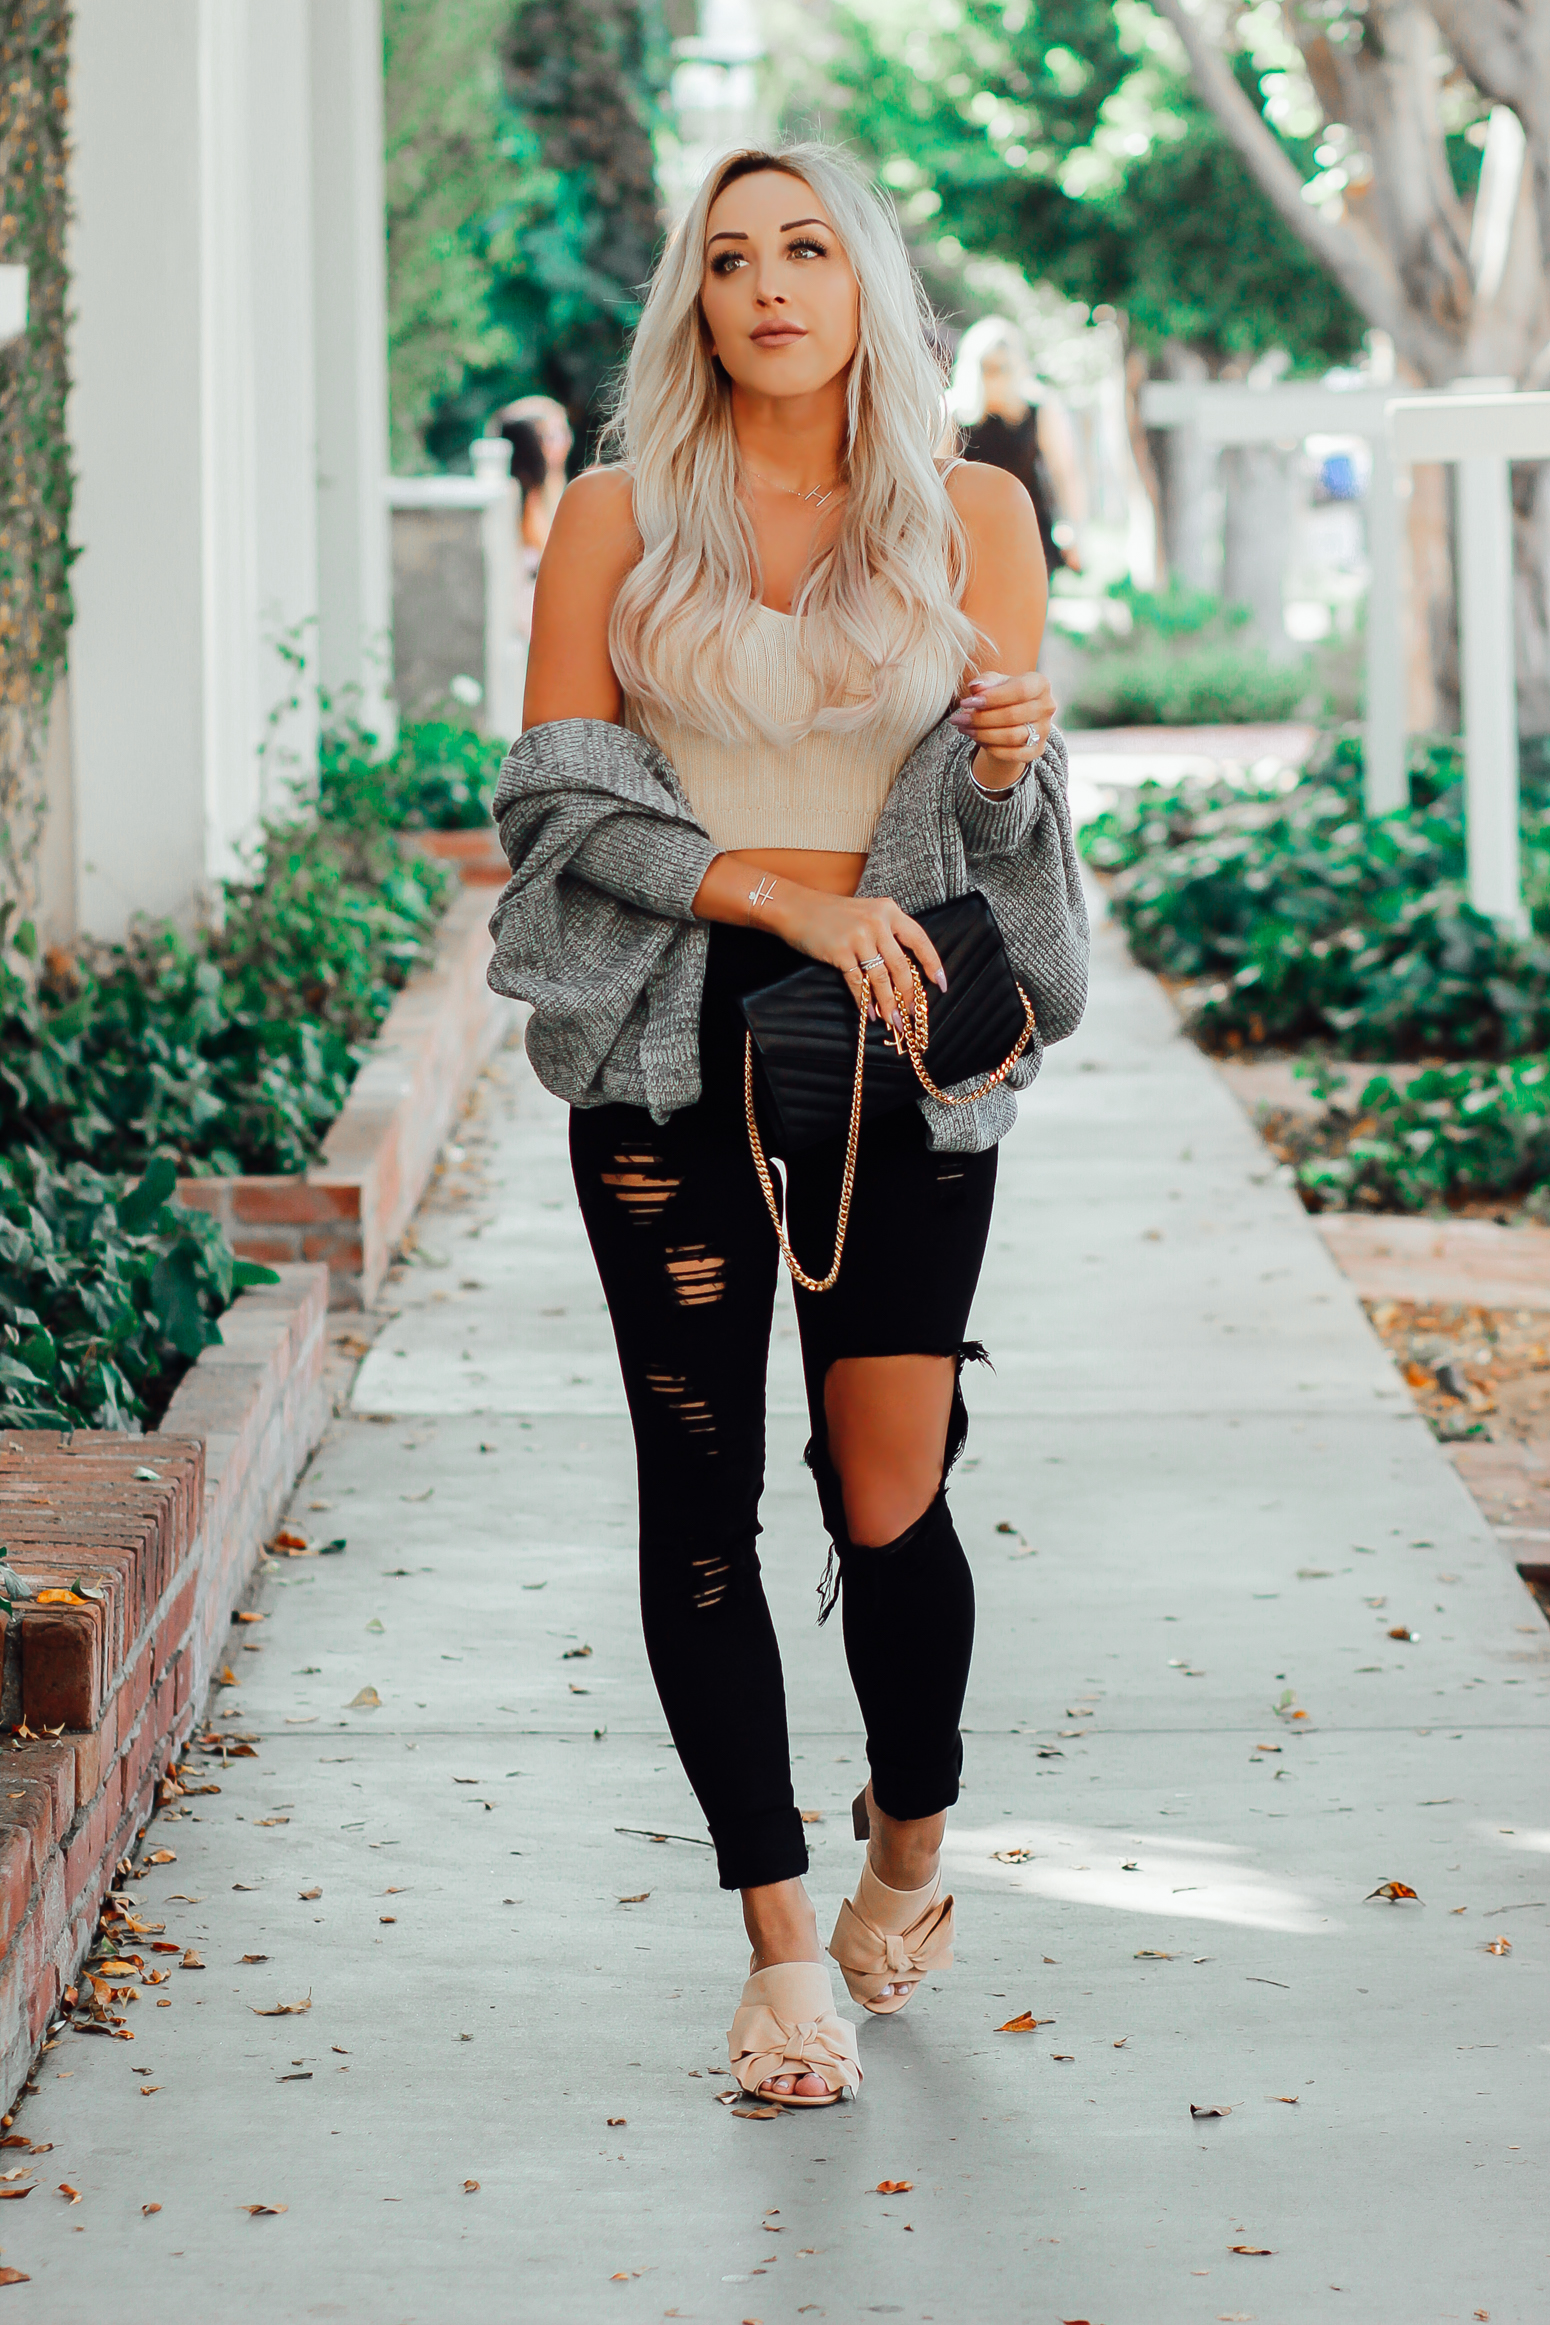 Blondie in the City | LA Fashion Street Style | YSL Bag |